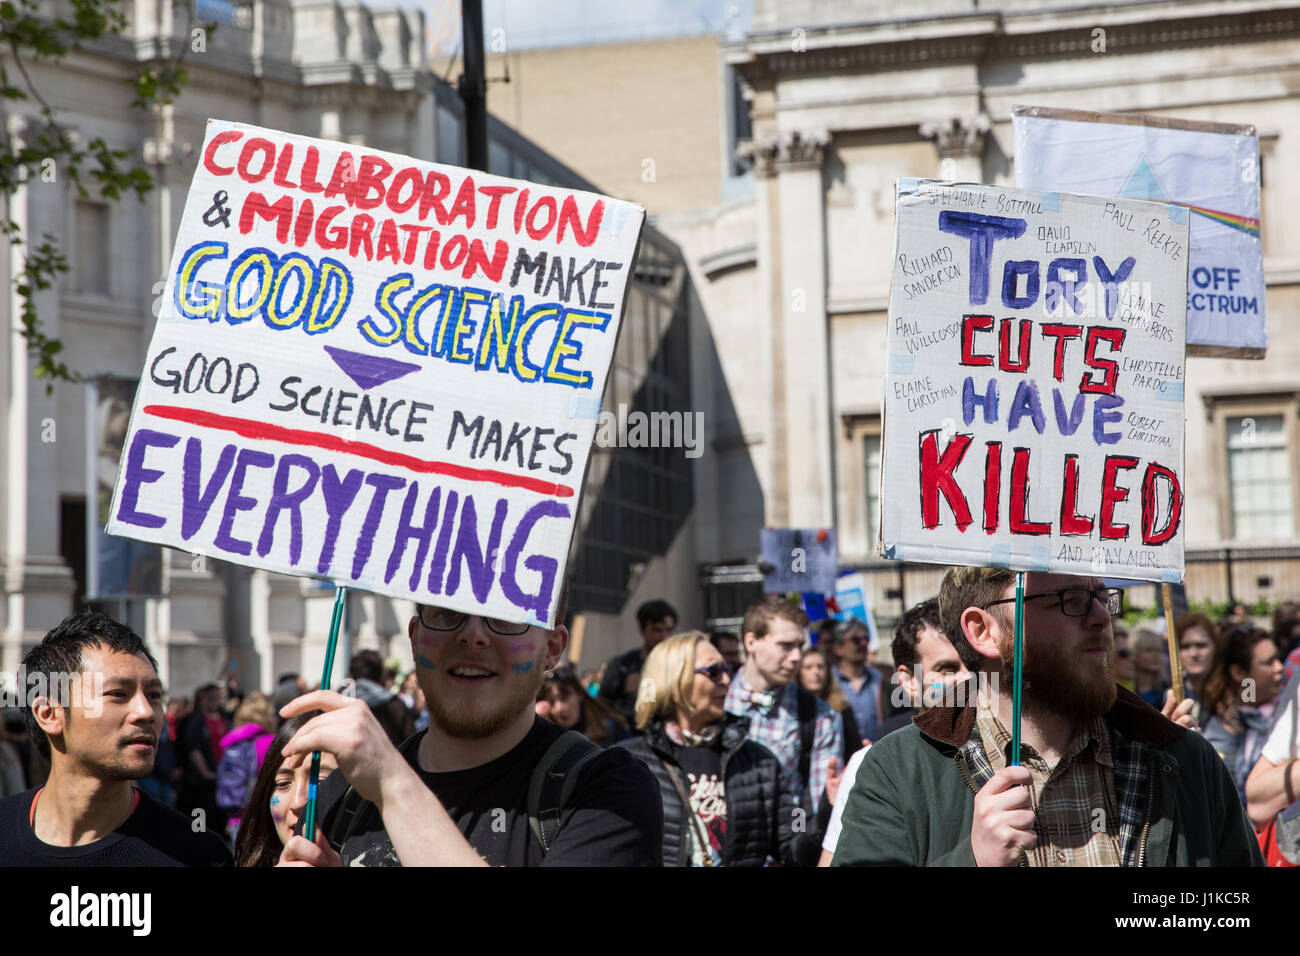 London, UK. 22nd April, 2017. Scientists march through central London on the 'March for Science' as part of a global - Stock Image